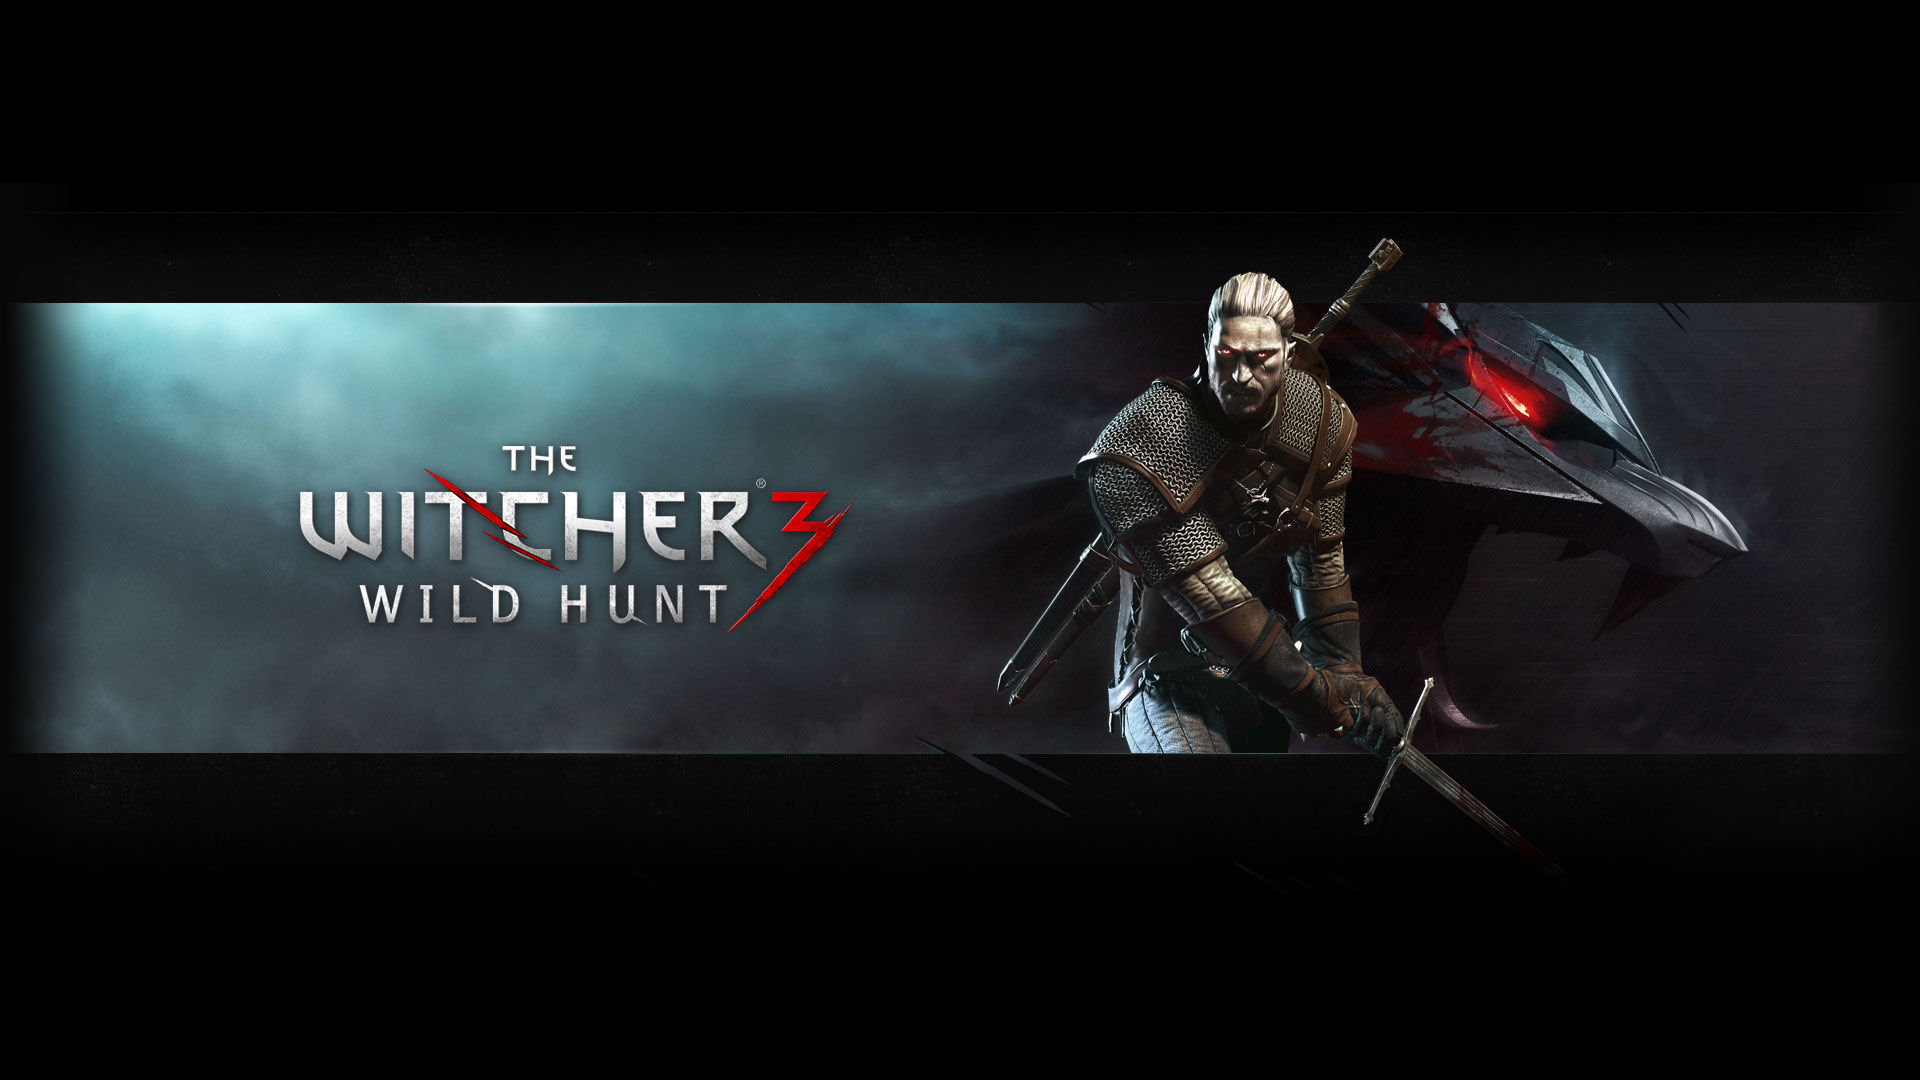 The Witcher 3 Geralt Wallpaper